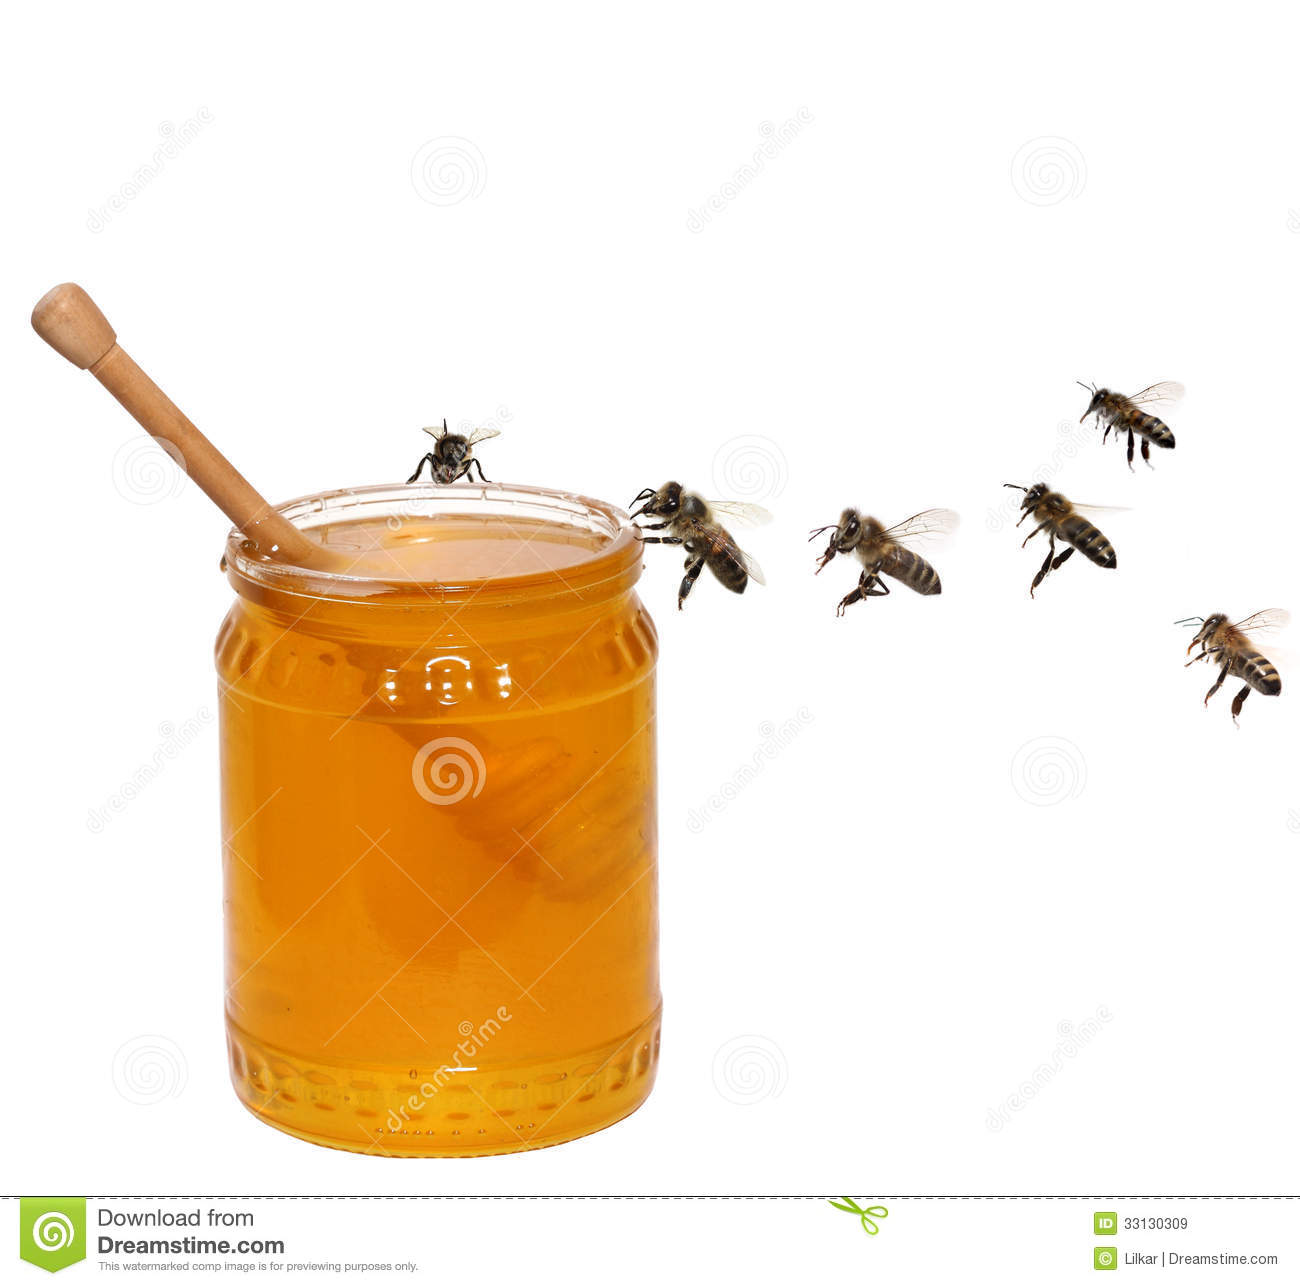 Honey Jar And Bees Royalty Free Stock Images - Image: 33130309